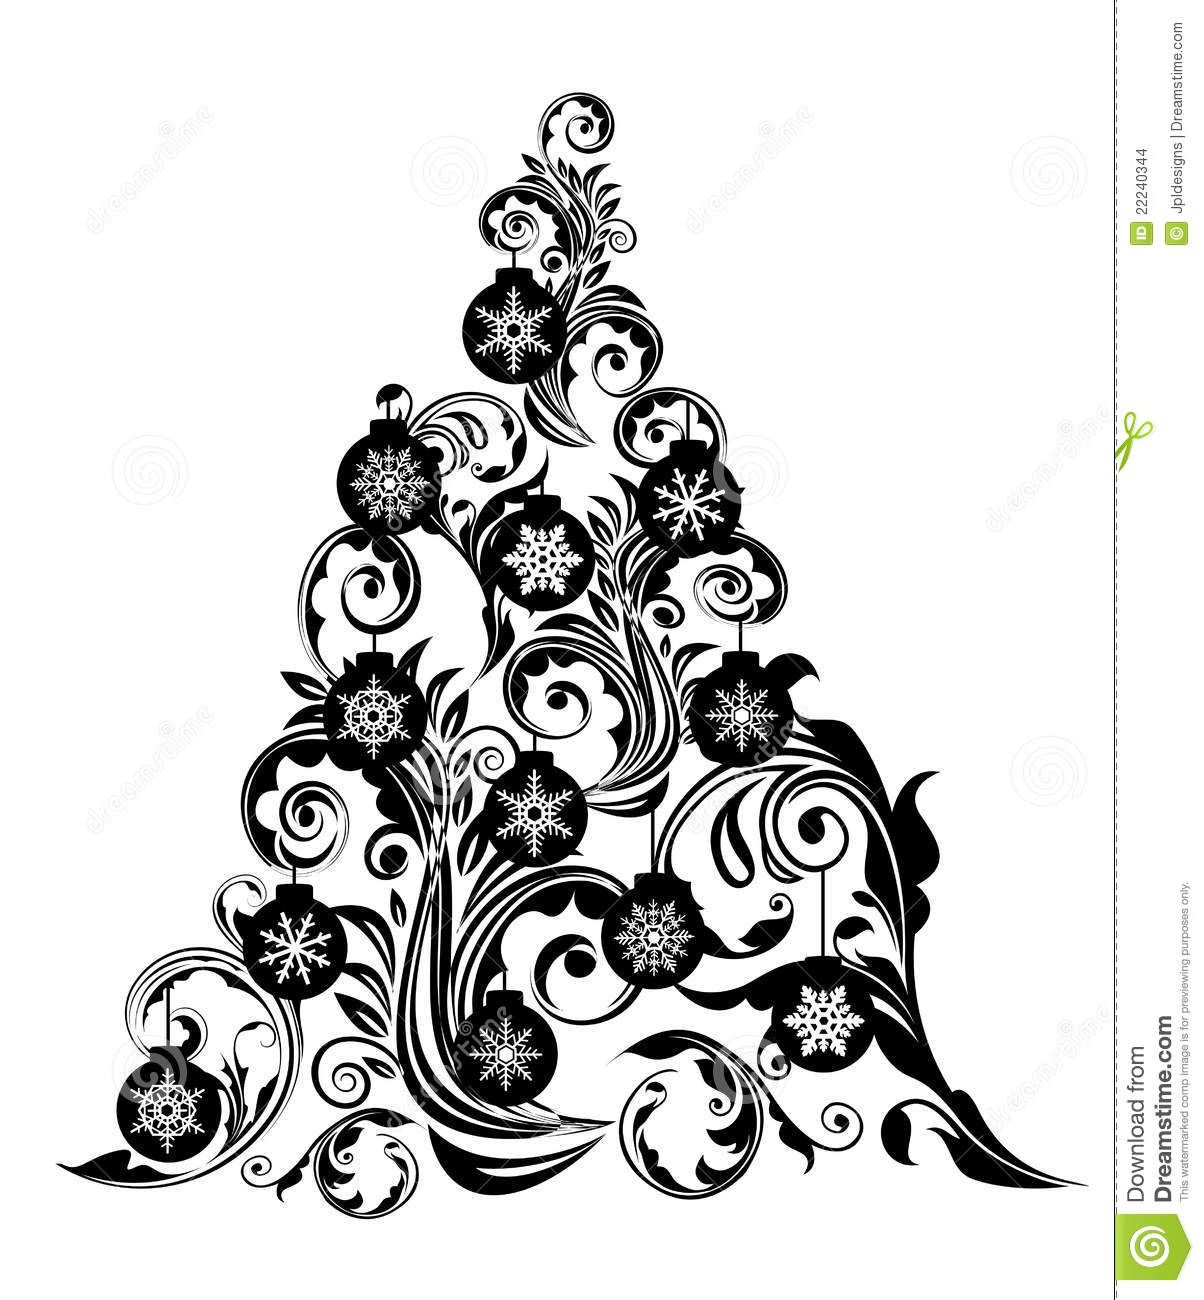 Christmas Tree Leaf Swirls Design And Ornaments Christmas Tree Clipart Christmas Tree Silhouette Christmas Tree Pictures